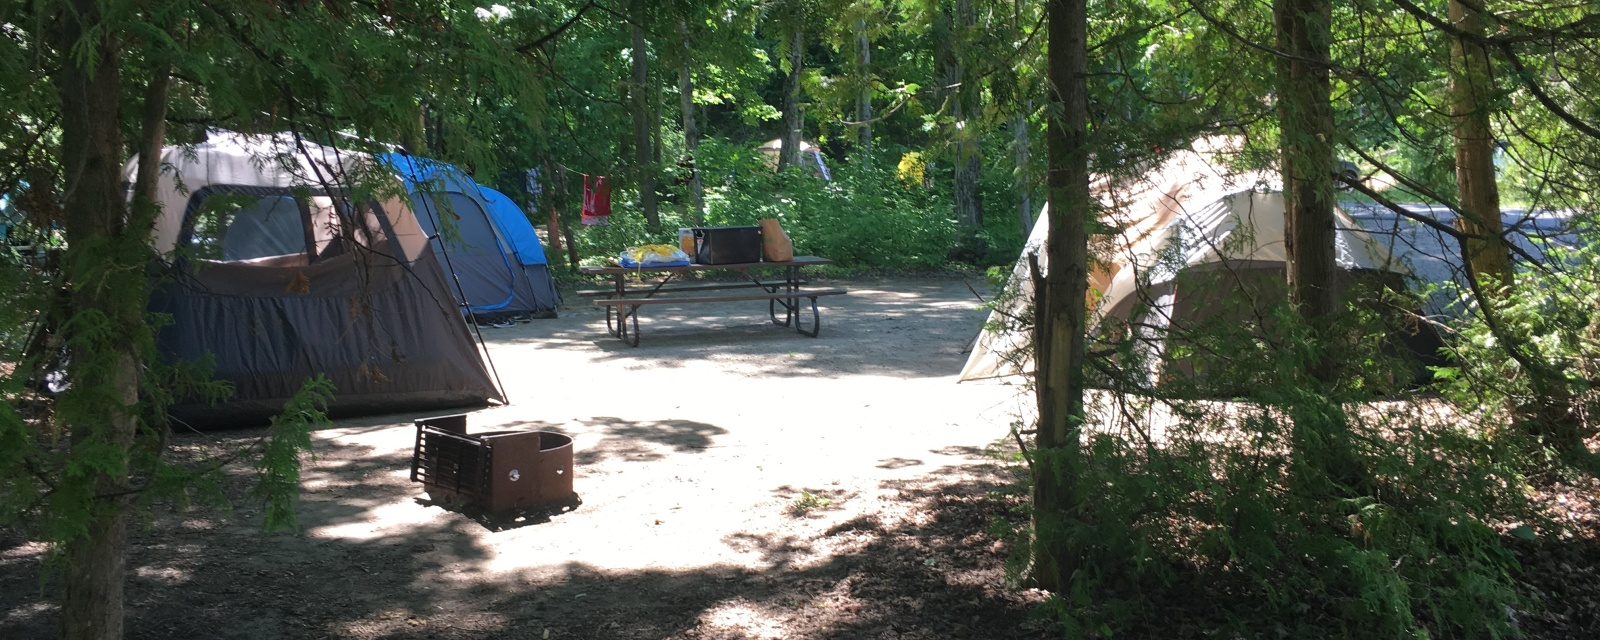 Campgrounds & Trailer Parks